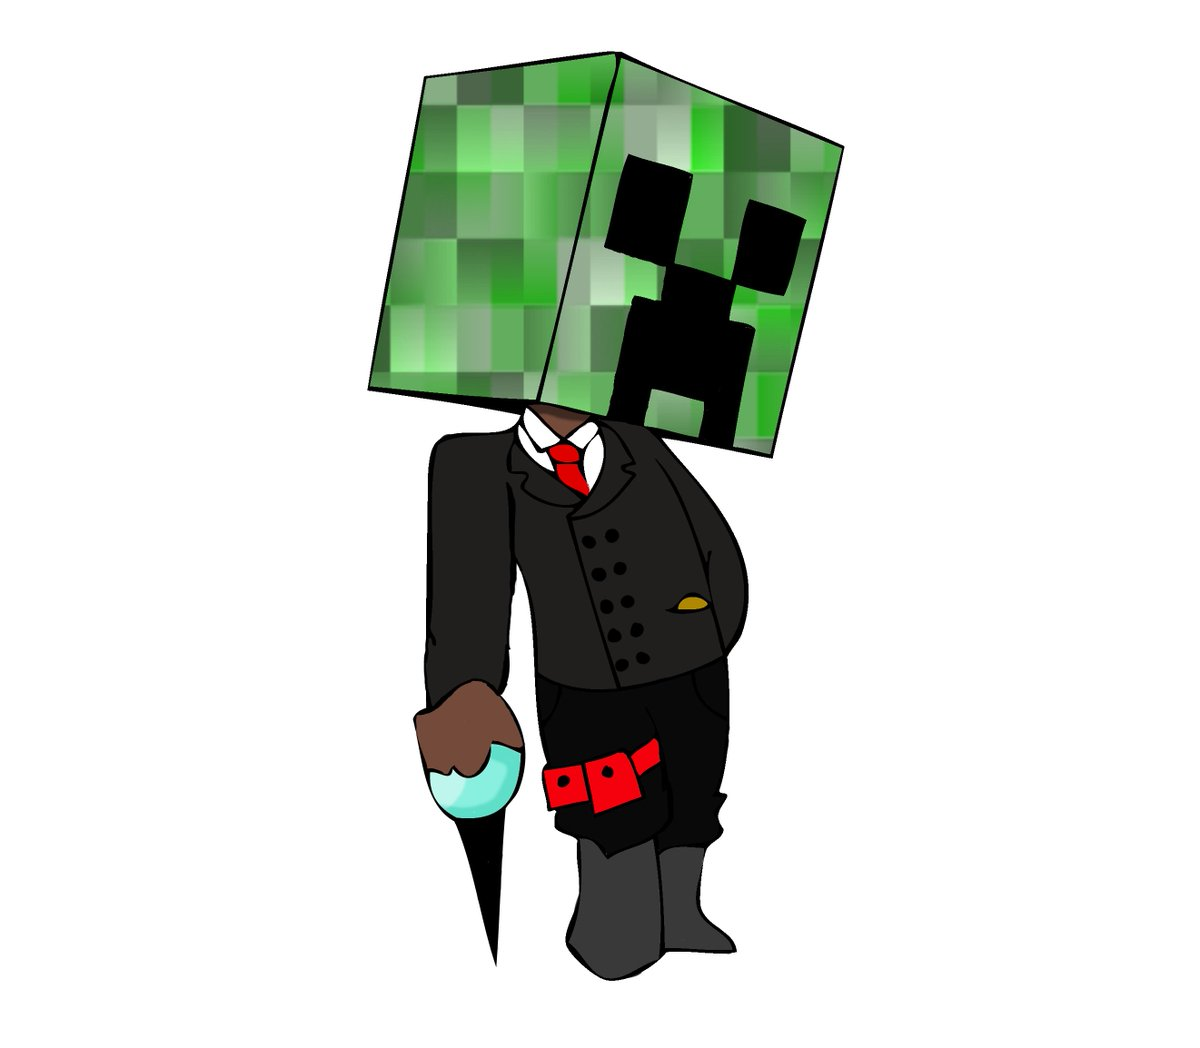 An old drawing of my boy Mr. Creeper Jr. looking sexy and ready for an adventure.  #Minecraft #minecraftcreeper #Minecraft坂道コンテスト #MrCreeperJrpic.twitter.com/JHEqycXPuF